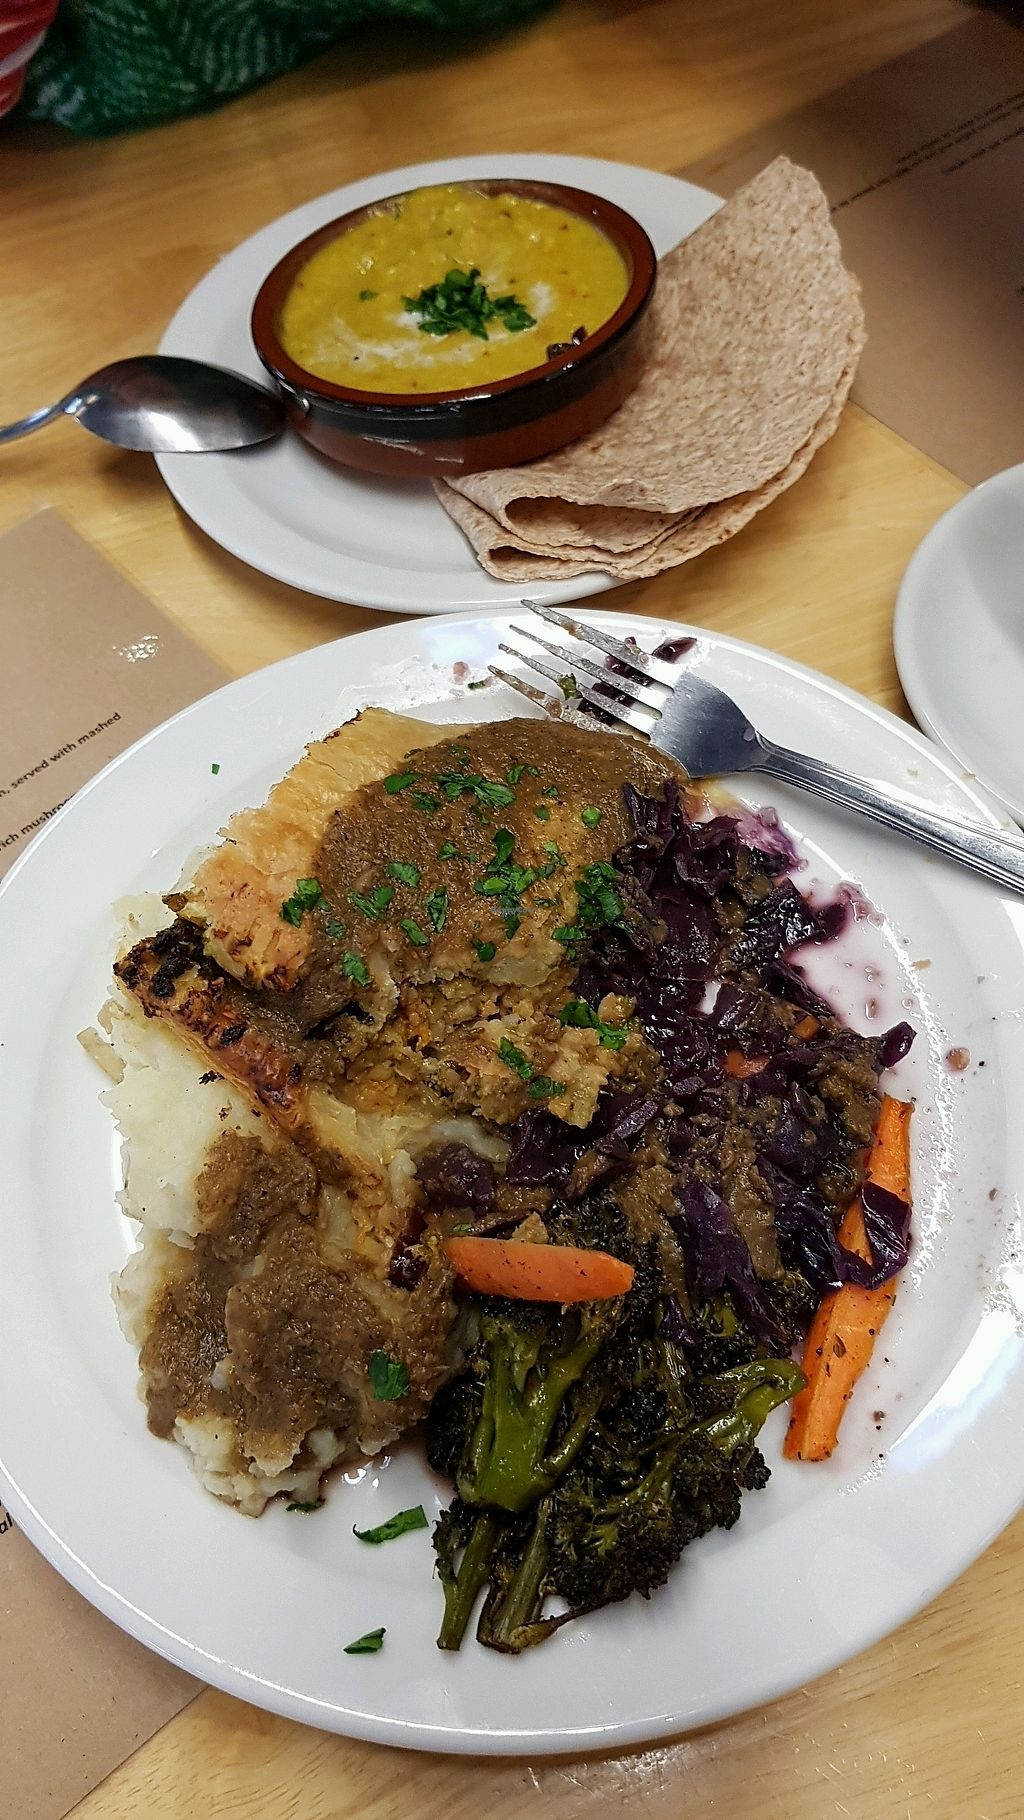 "Photo of Cafe Van Gogh  by <a href=""/members/profile/jollypig"">jollypig</a> <br/>Sunday roast & flat bread and dhal <br/> March 18, 2018  - <a href='/contact/abuse/image/69852/372426'>Report</a>"